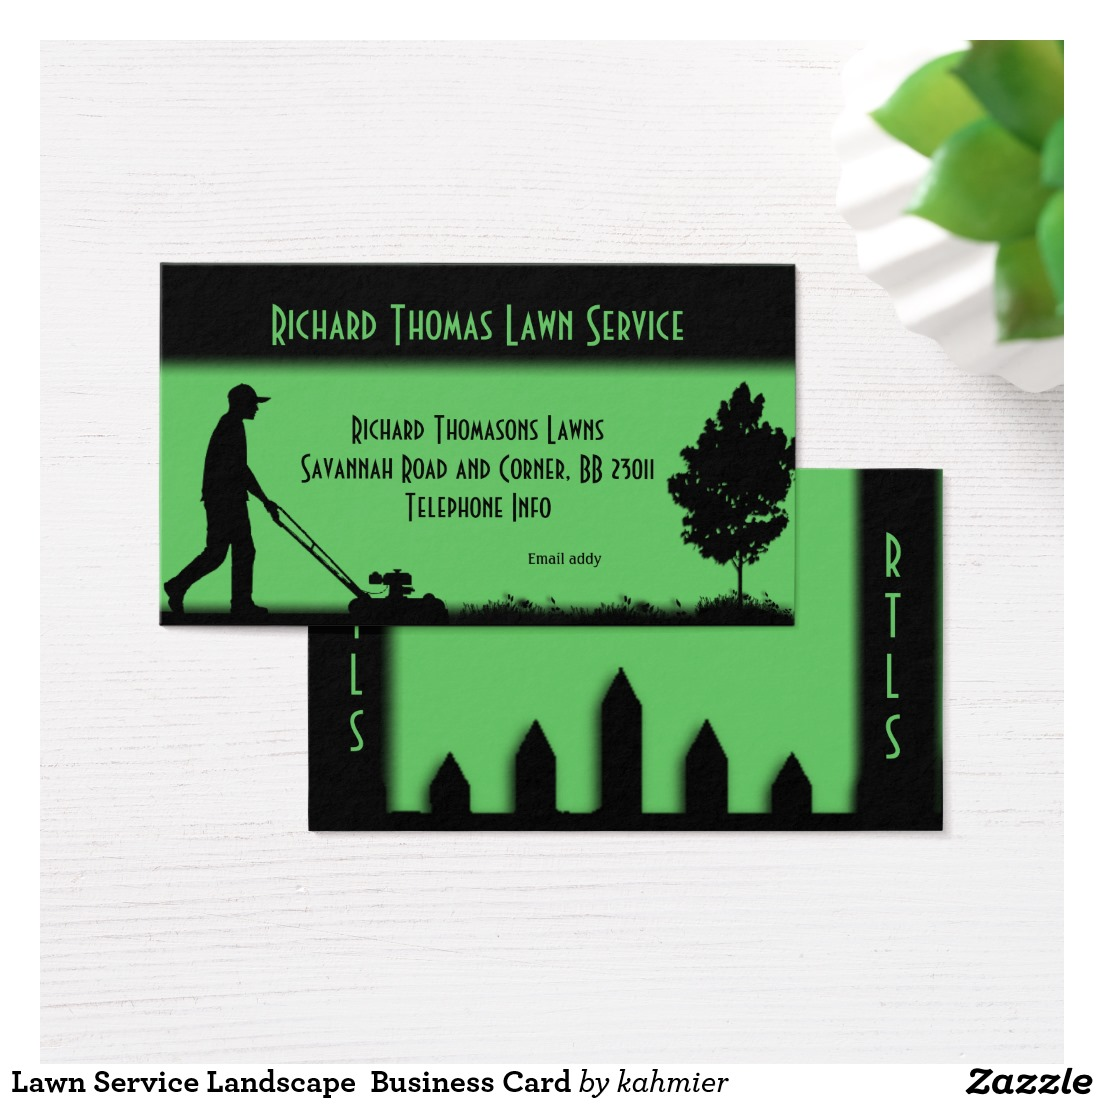 Lawn Service Landscape Business Card